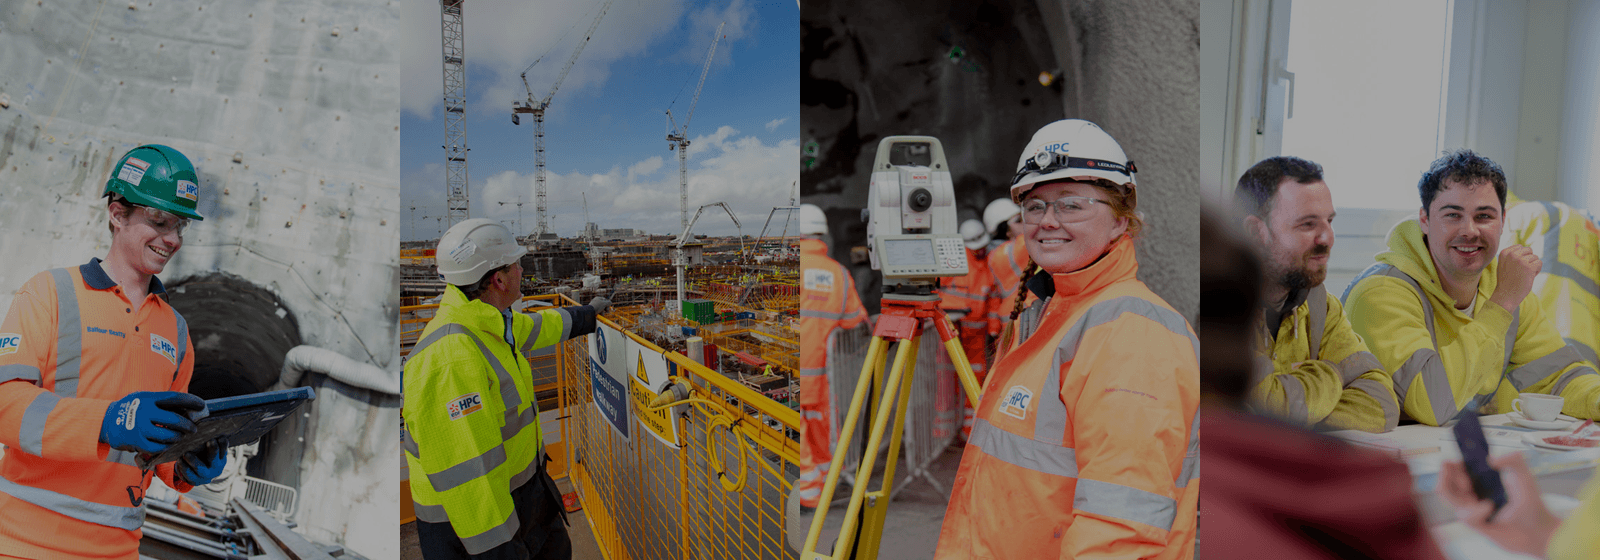 Why work at Hinkley Point C?